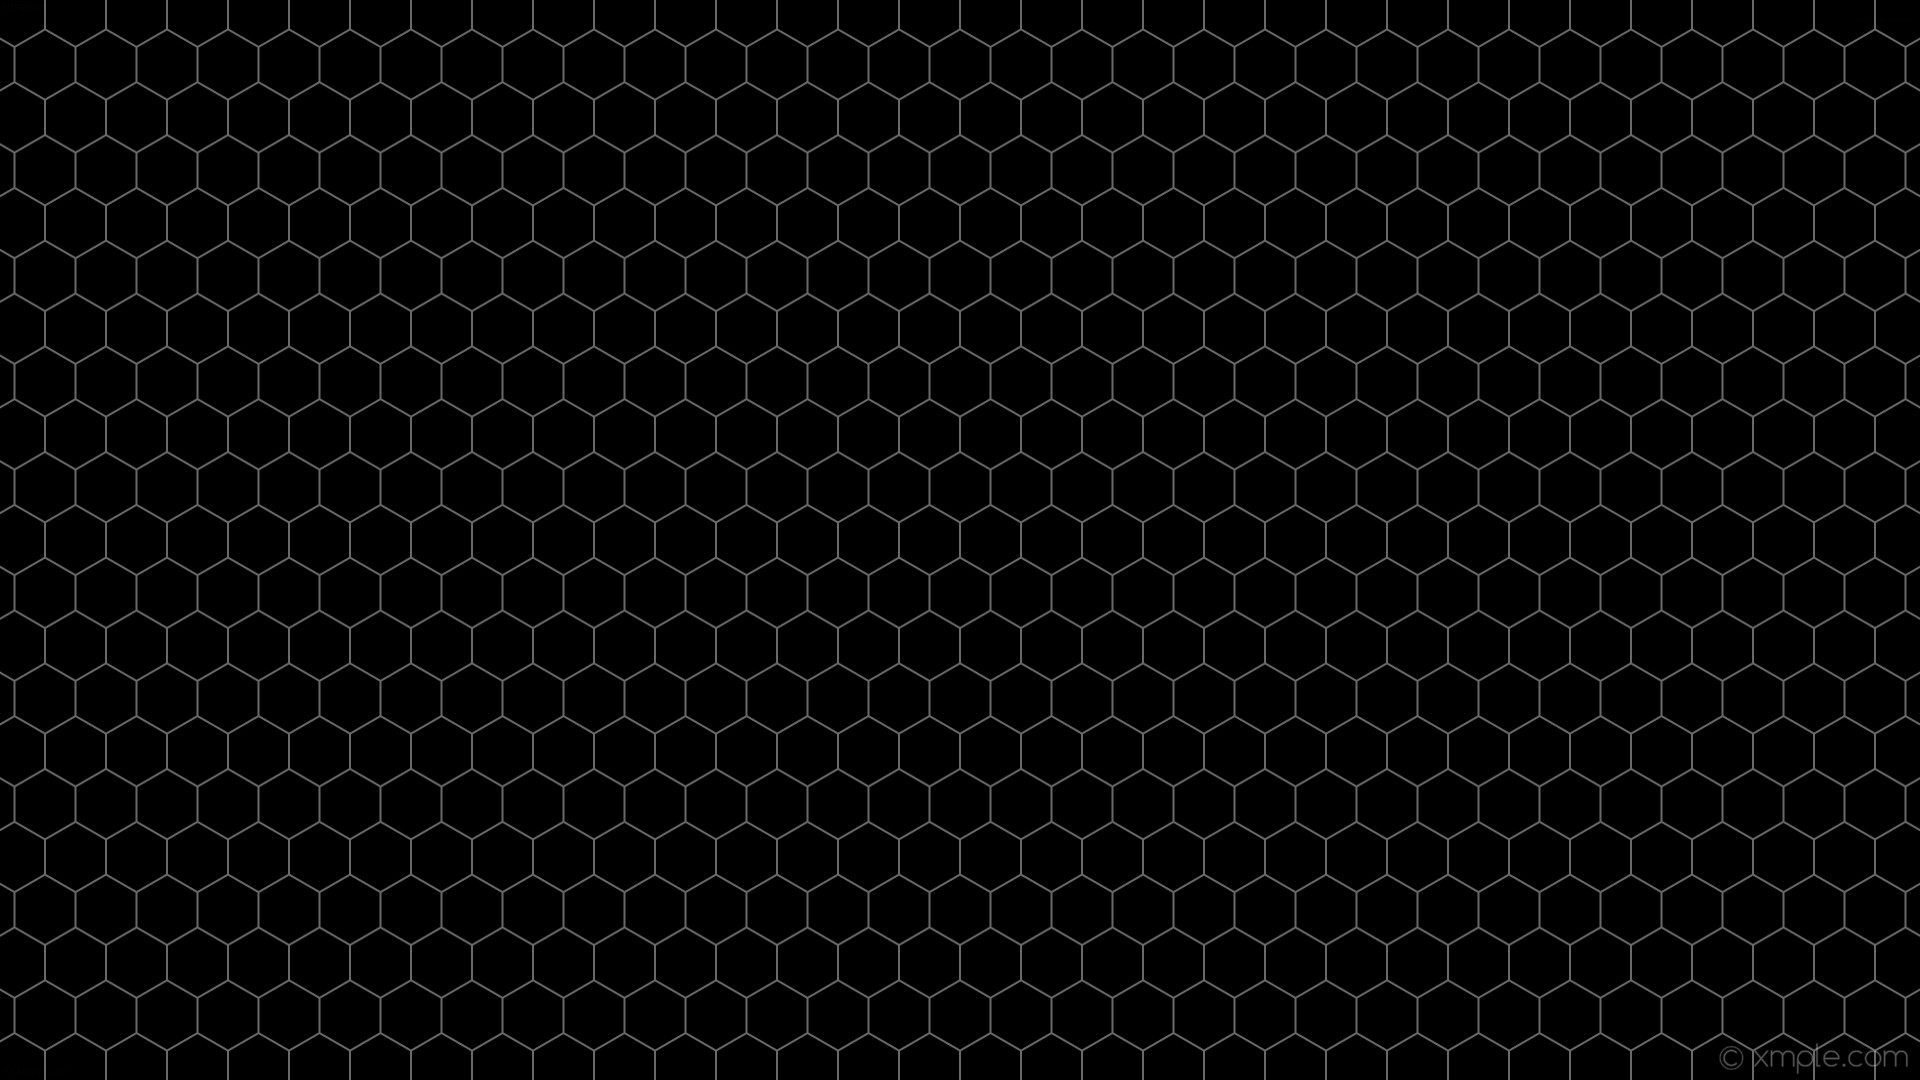 Black Hexagon Wallpaper 84 Images